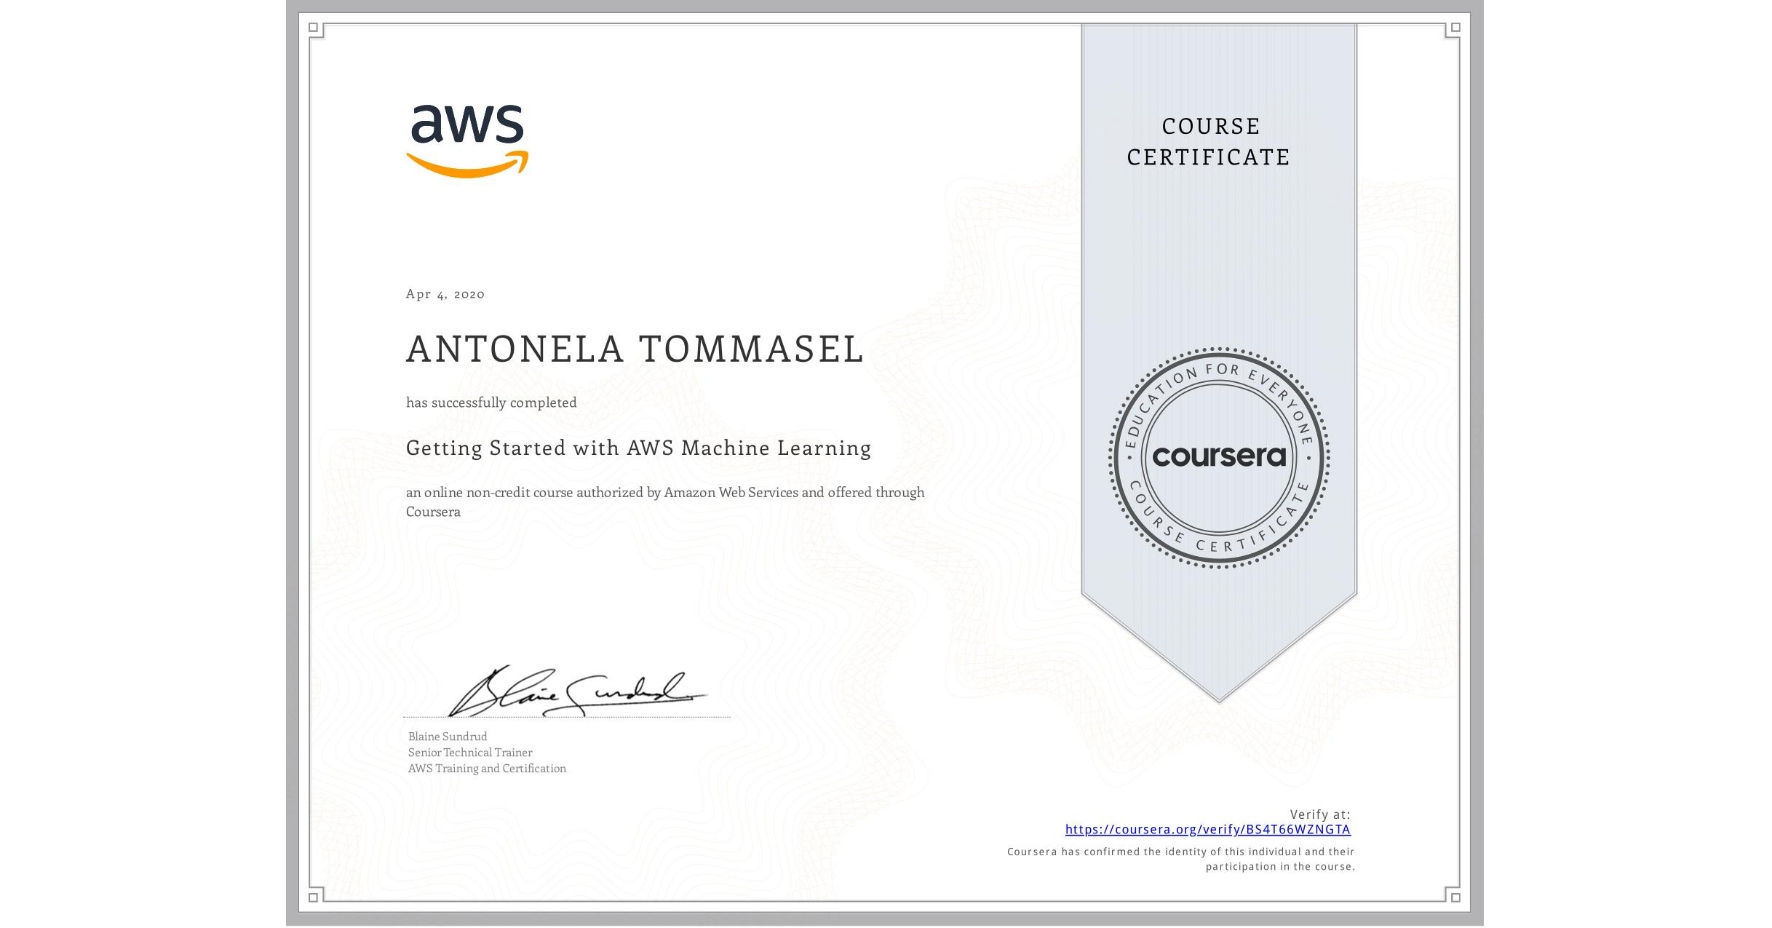 View certificate for Antonela Tommasel, Getting Started with AWS Machine Learning, an online non-credit course authorized by Amazon Web Services and offered through Coursera